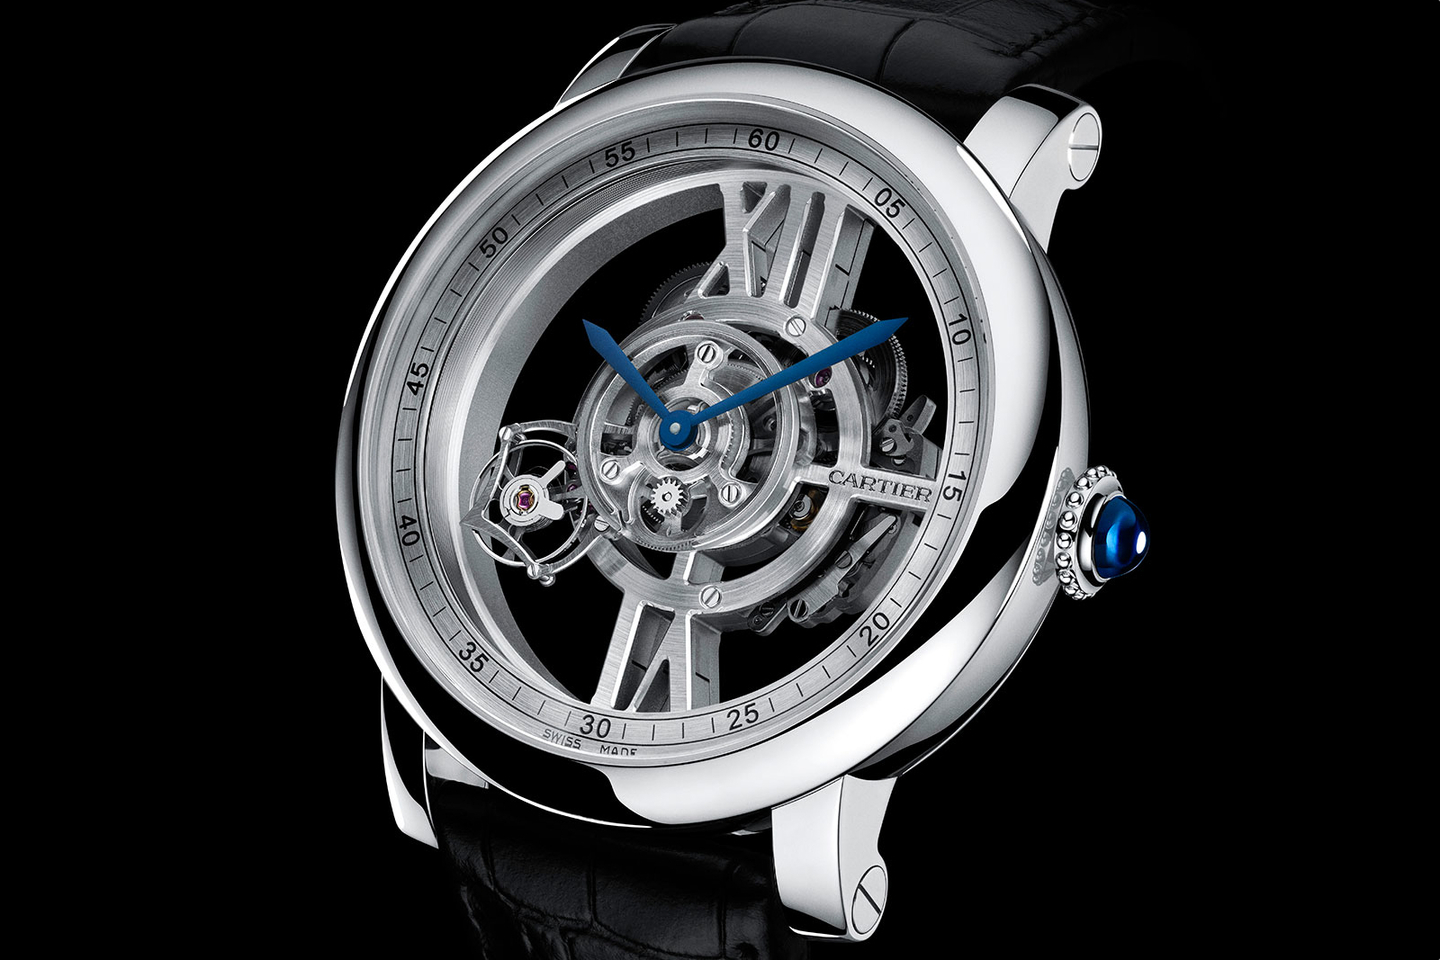 Cartier-Astrotourbillon-Skeleton-